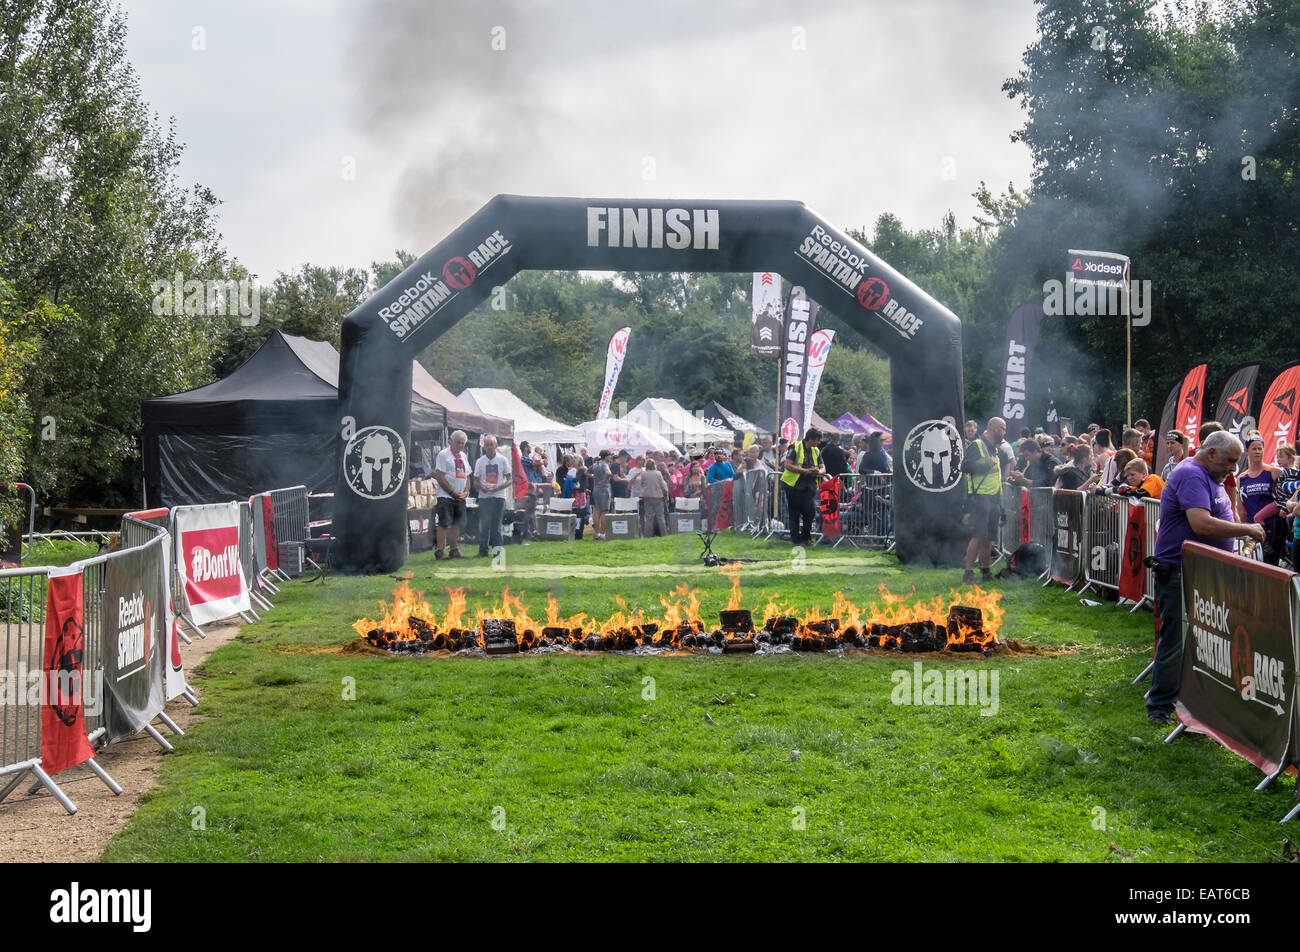 last-obstacle-trial-by-fire-before-finish-line-spartan-race-milton-EAT6CB.jpg